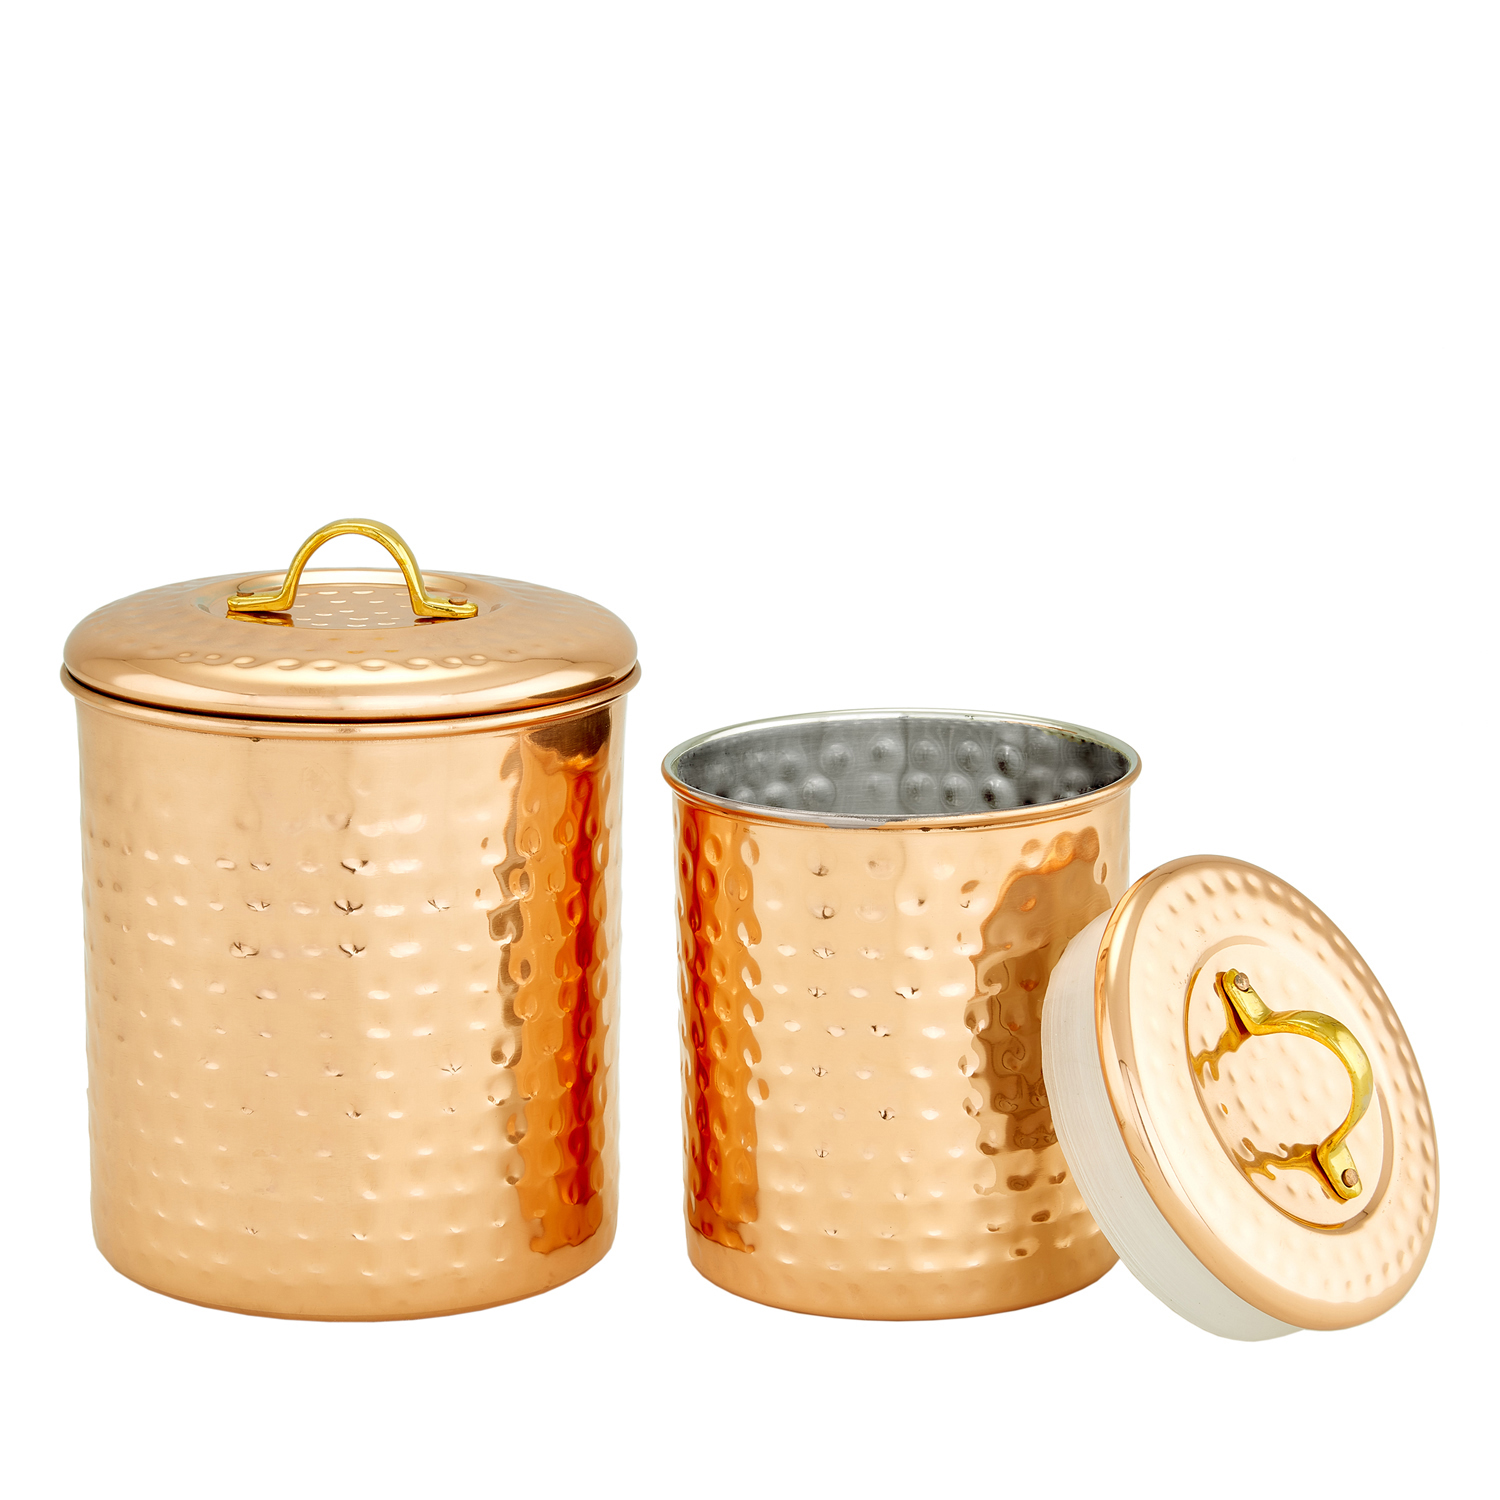 Copper Hammered Storage Canisters Set of 2